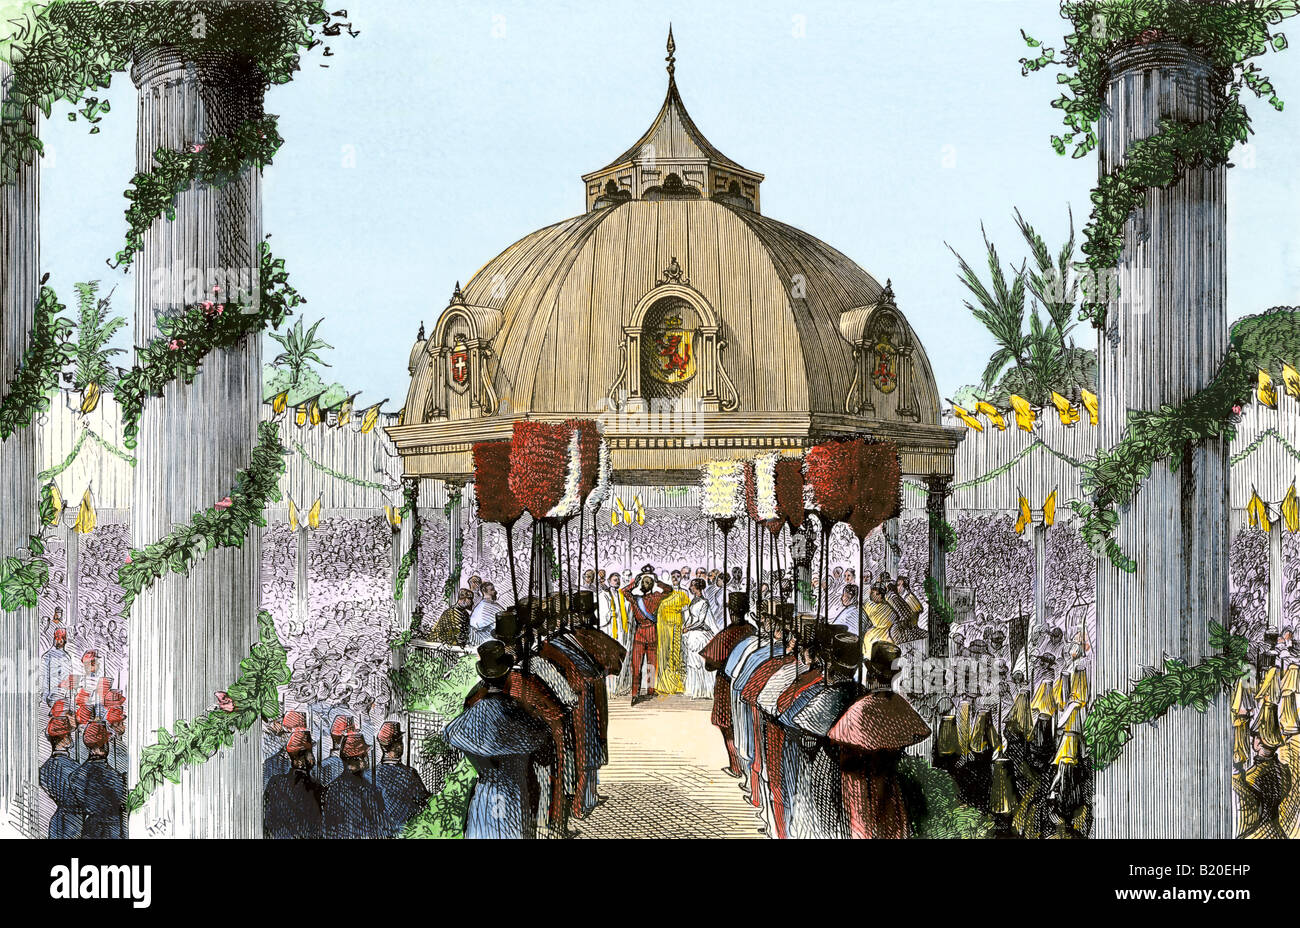 Coronation of the king of the Sandwich Islands 1870s - Stock Image